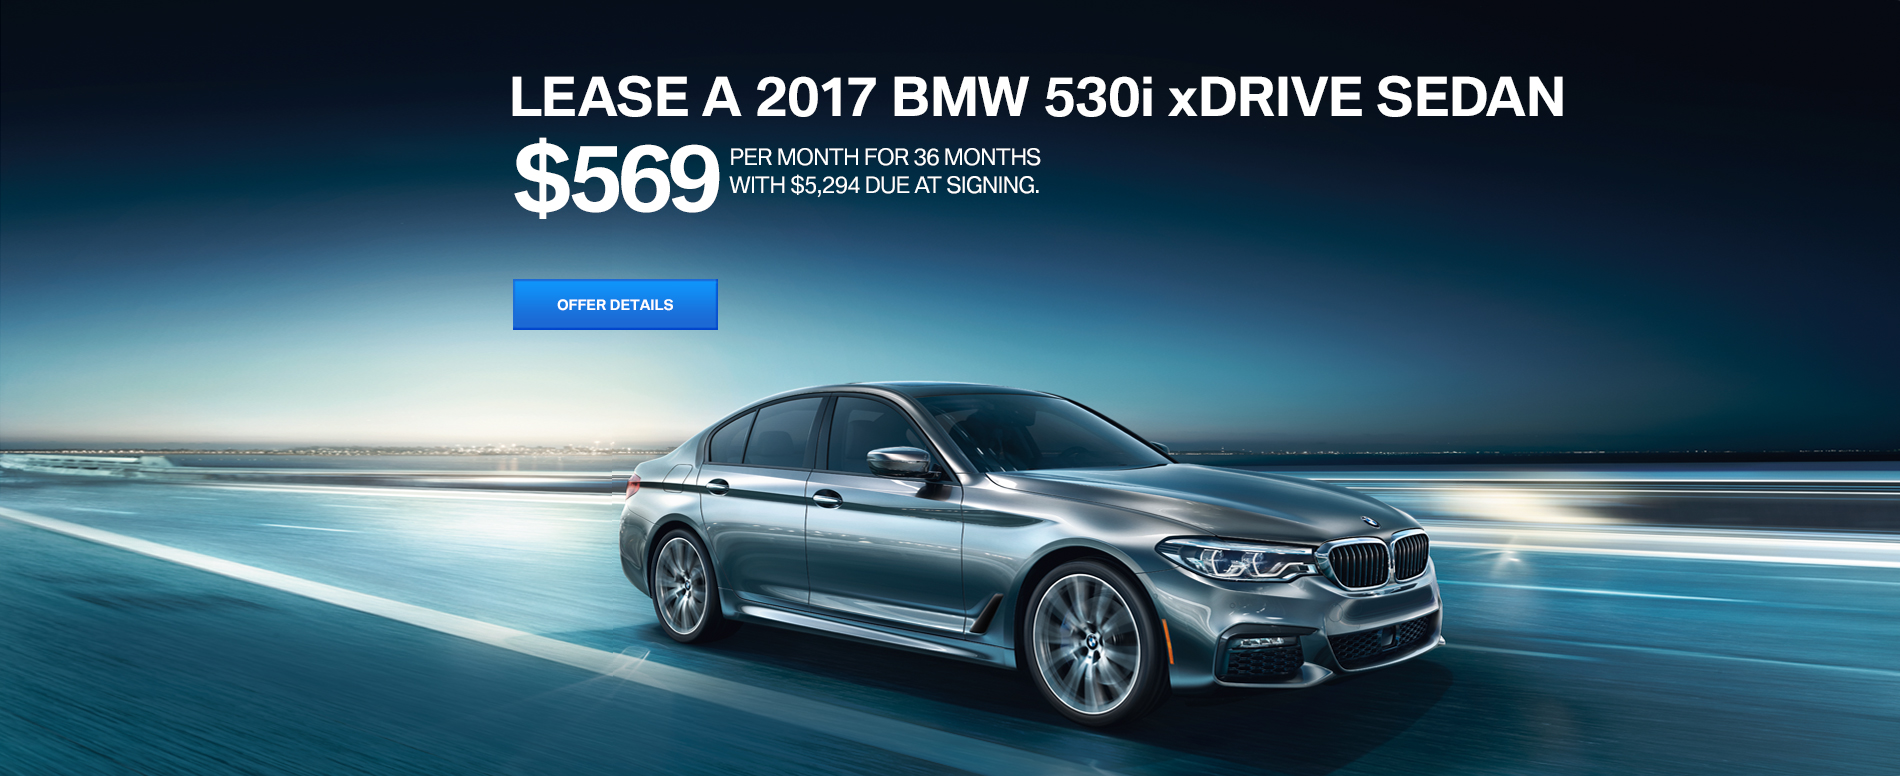 LEASE A 2017 530i xDRIVE FOR $569/MO FOR 36 MONTHS